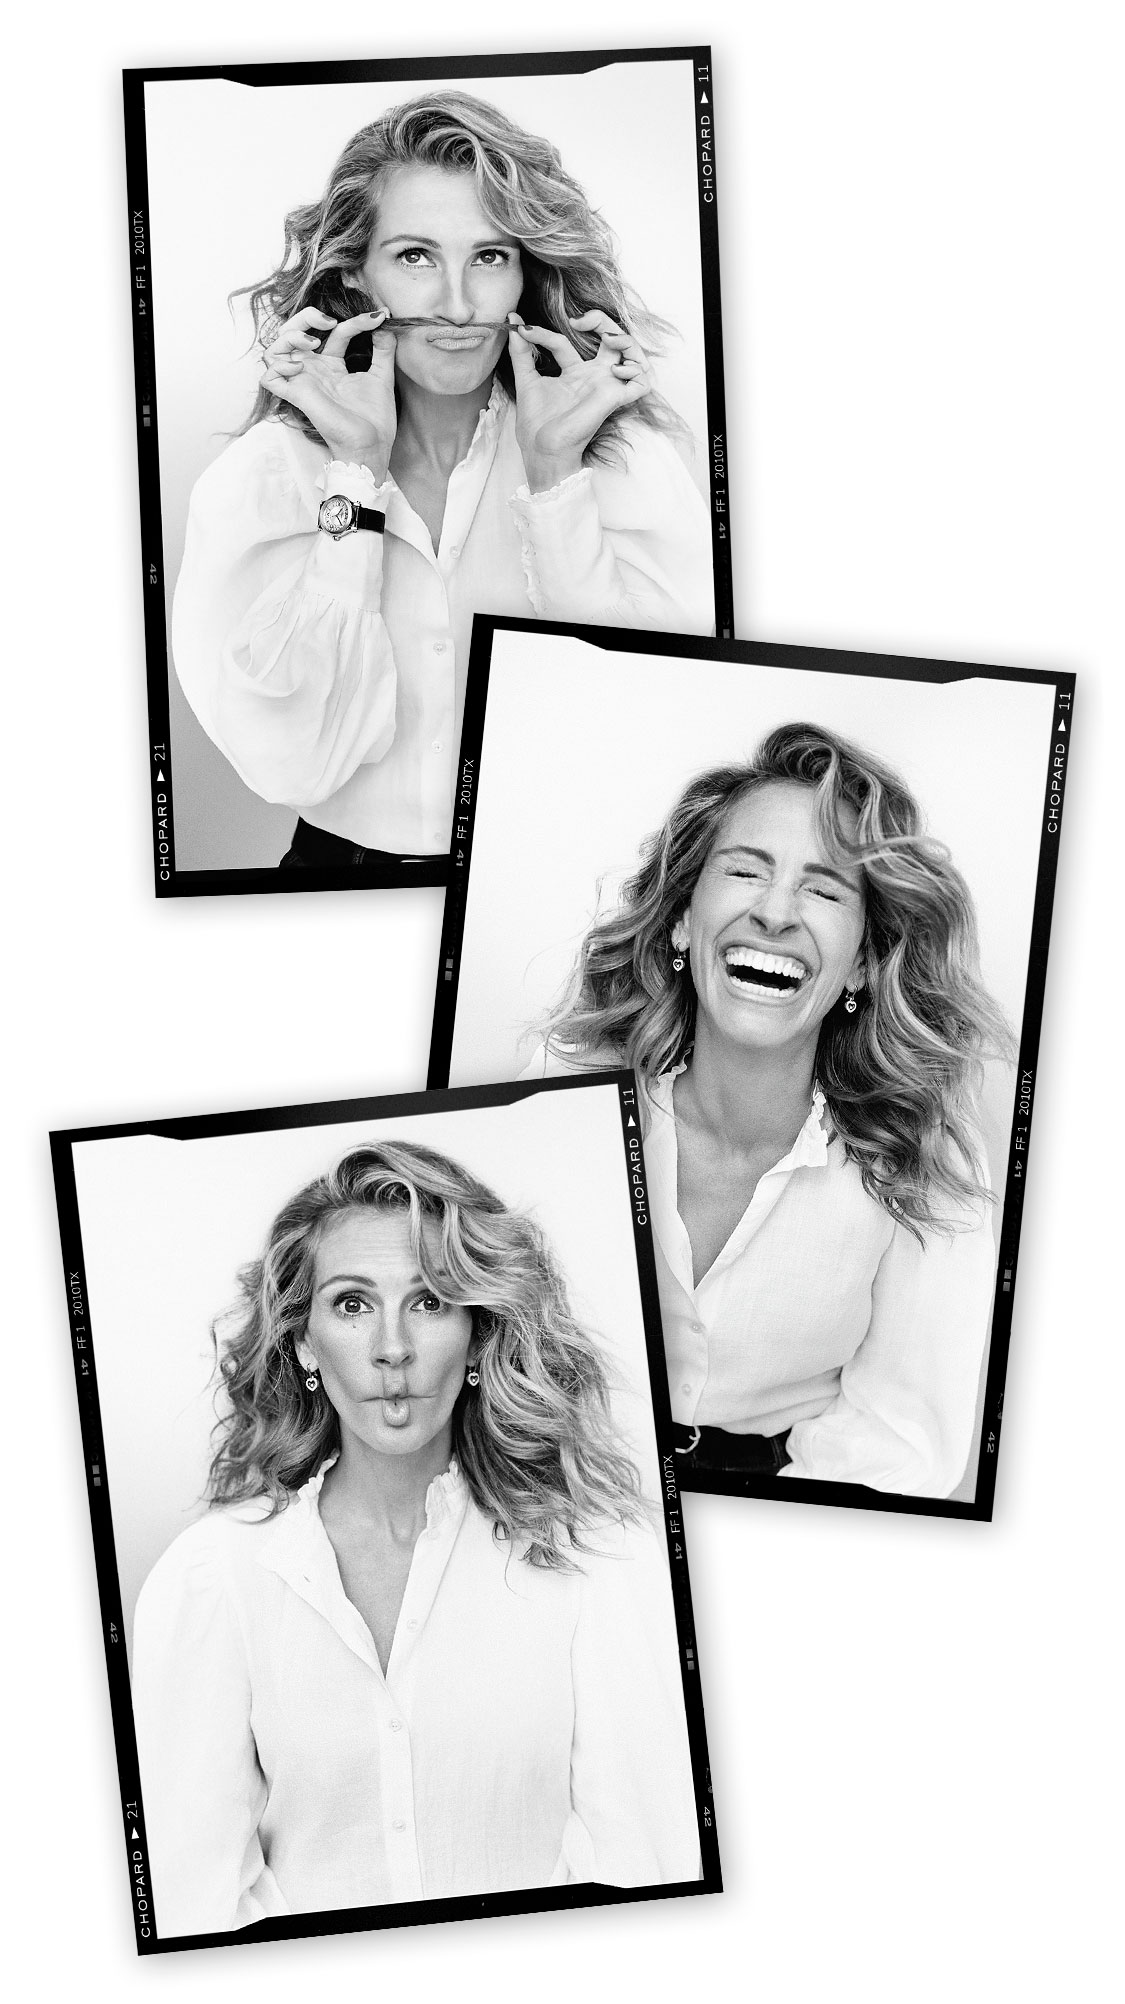 8 small picture illustrating Julia Roberts under severals angles